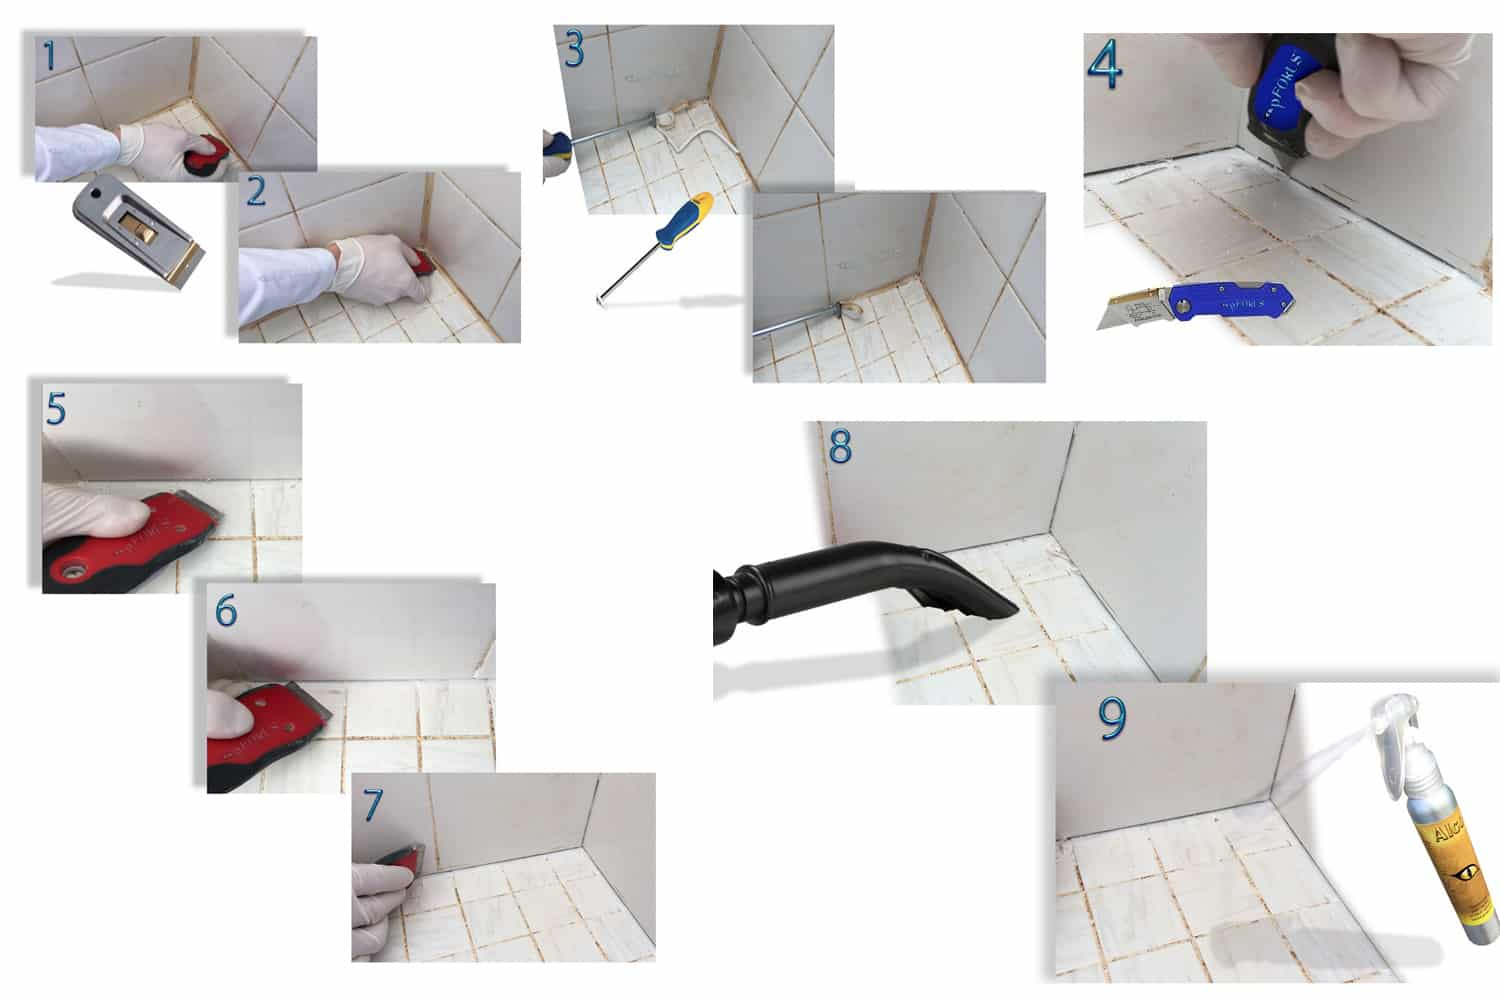 Caulk-Removal - Directions- pFOkUS